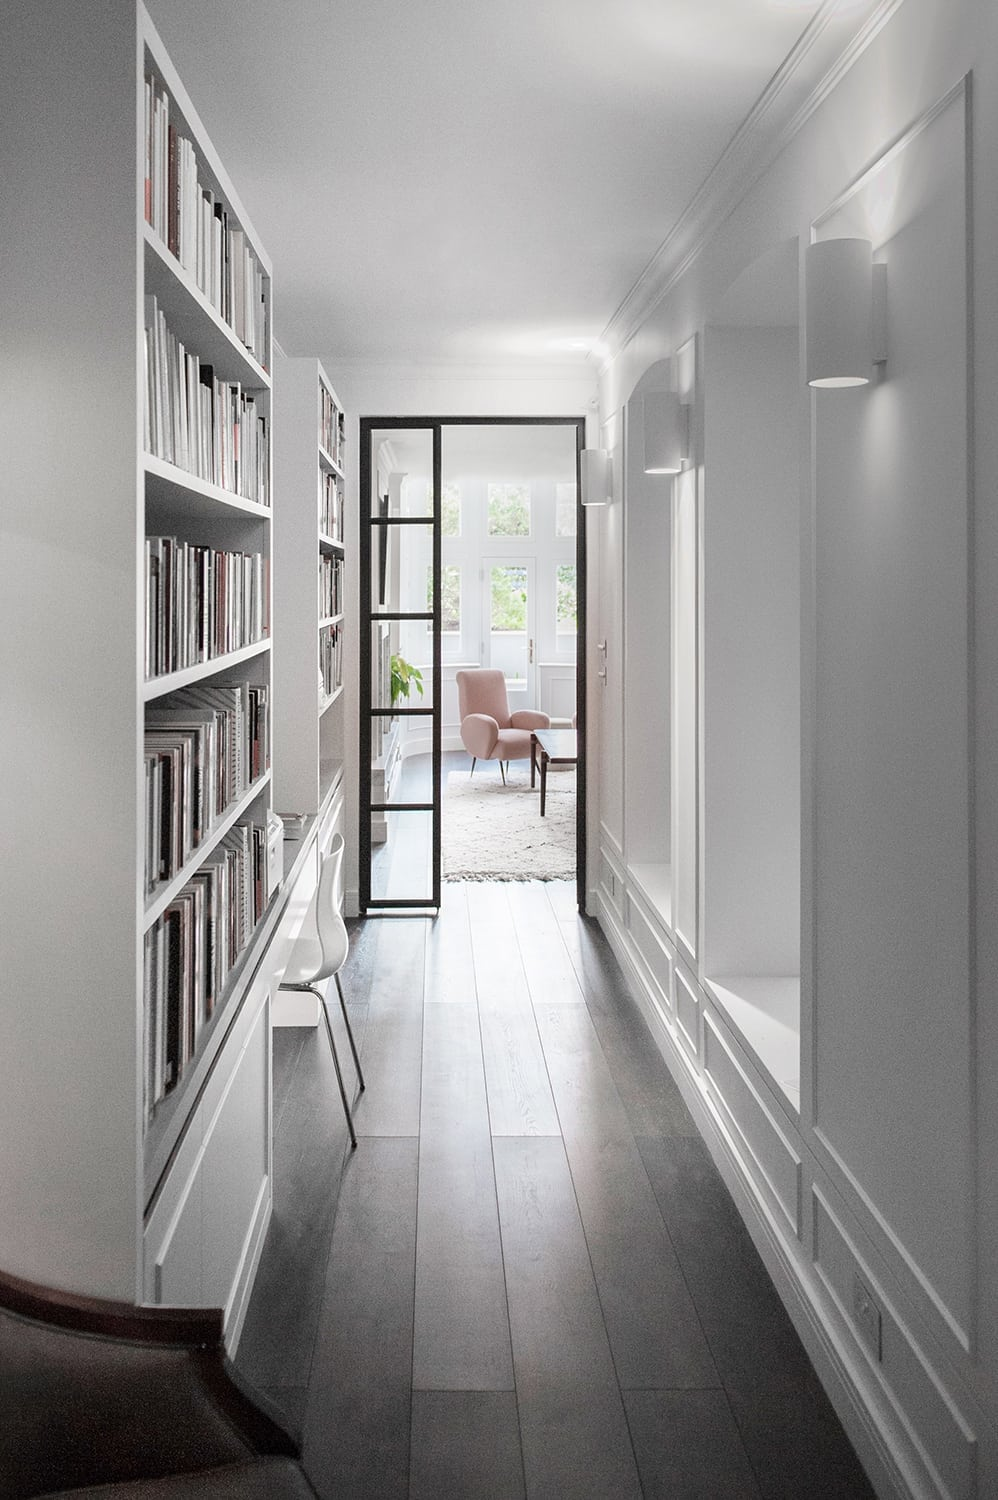 Notting Hill - mansion block refurbishment bespoke joinery traditional details crittall